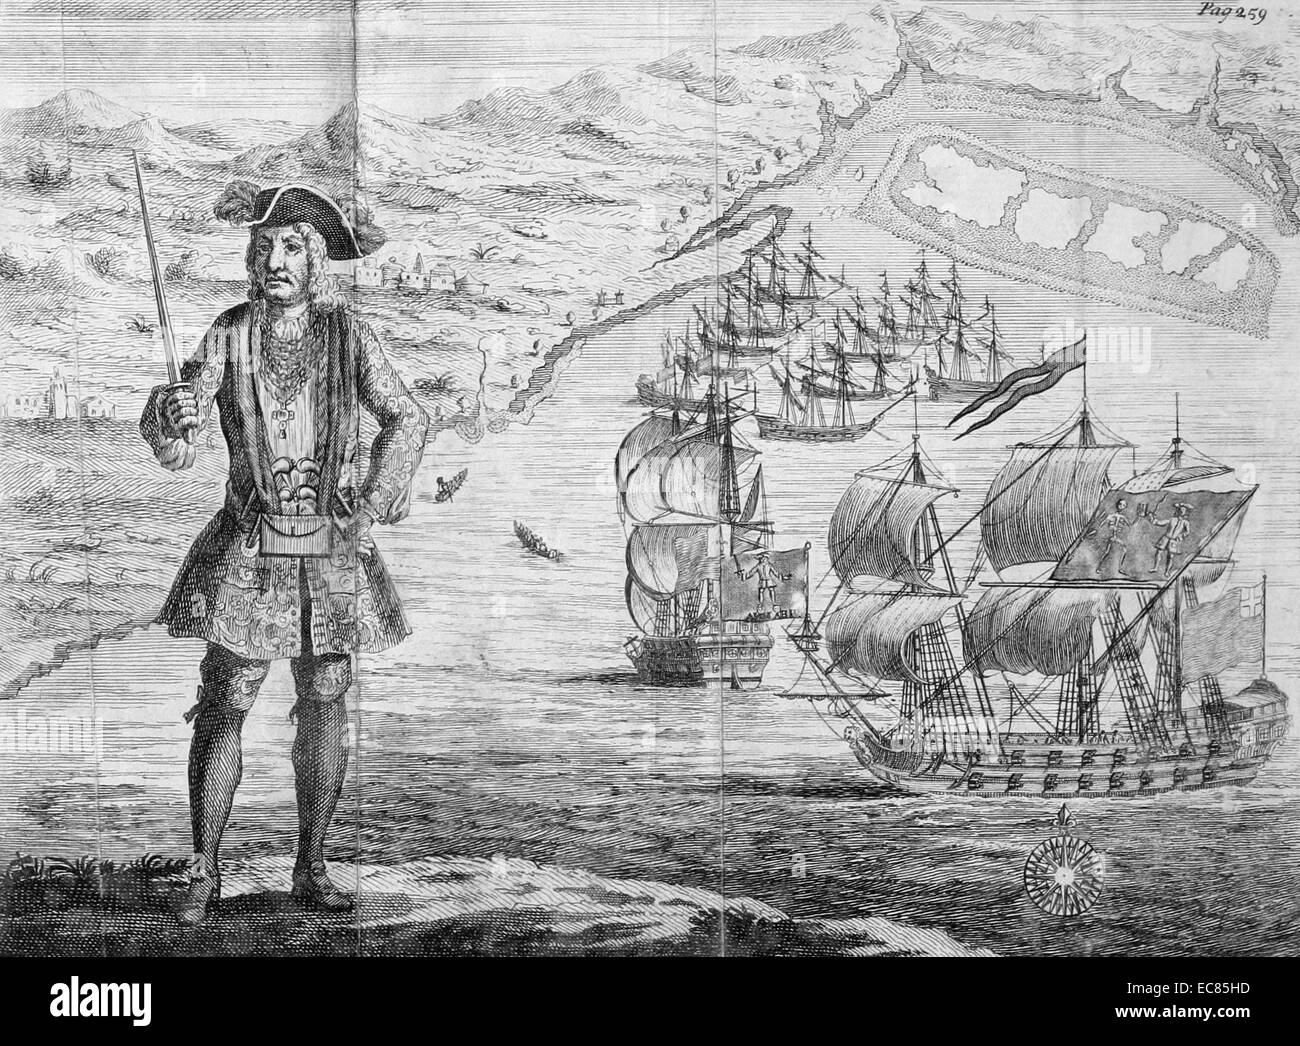 Engraving of Bartholomew Roberts with his ship and captured merchant ships - Stock Image